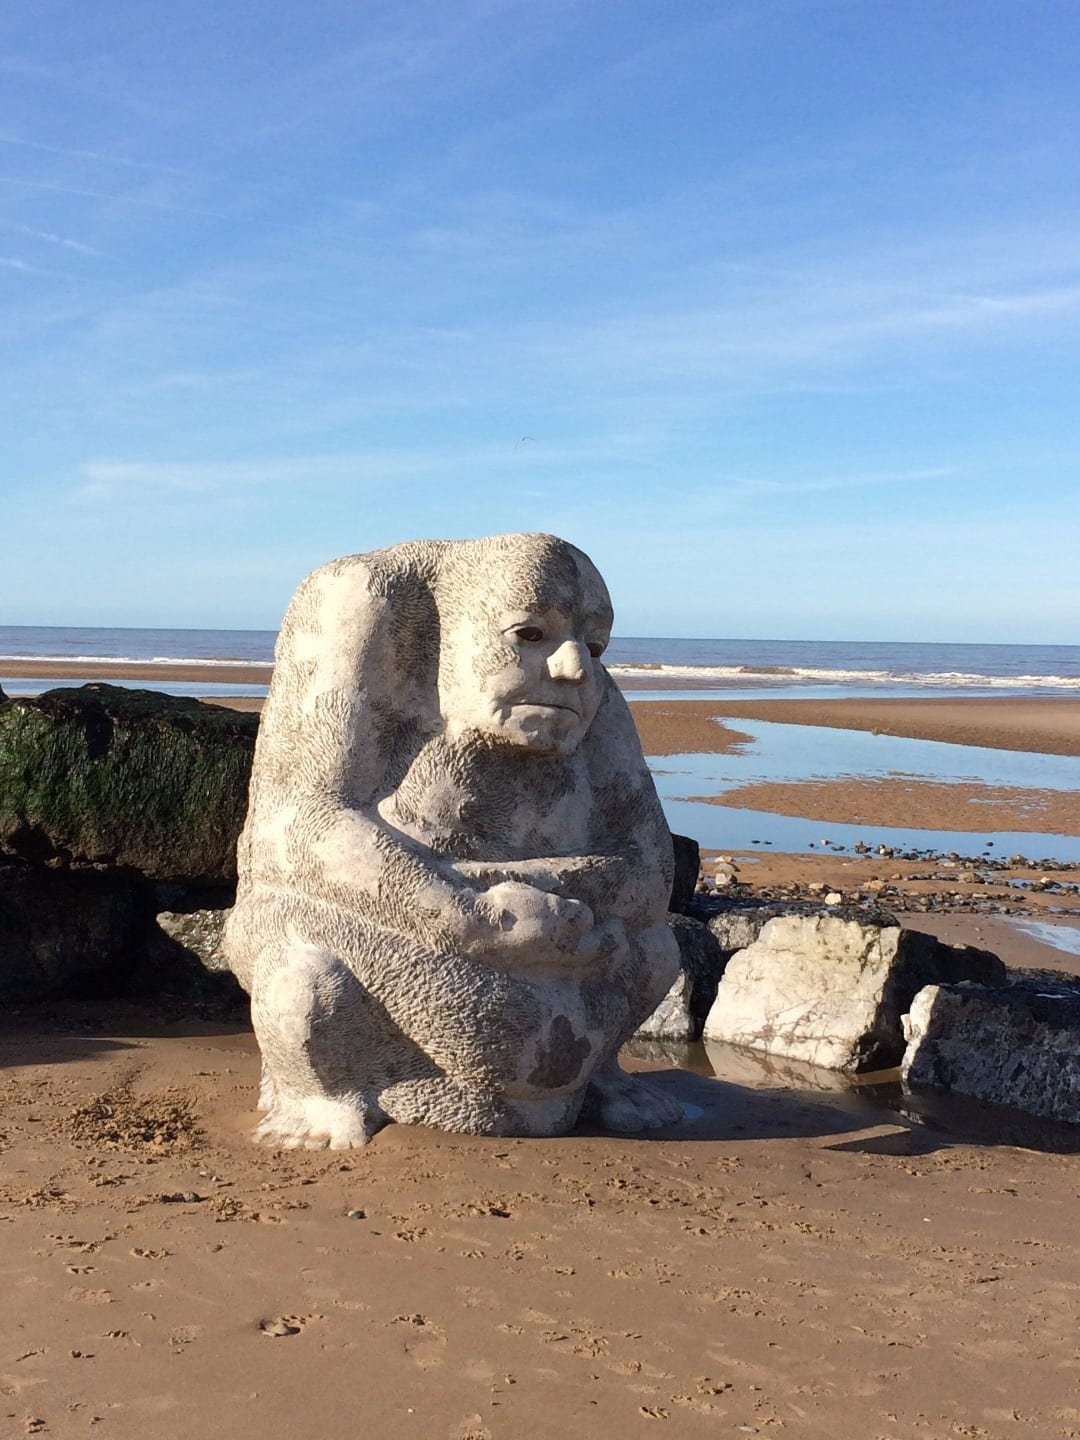 Stone ogre on Cleveleys beach, part of Sea Swallow artwork trail